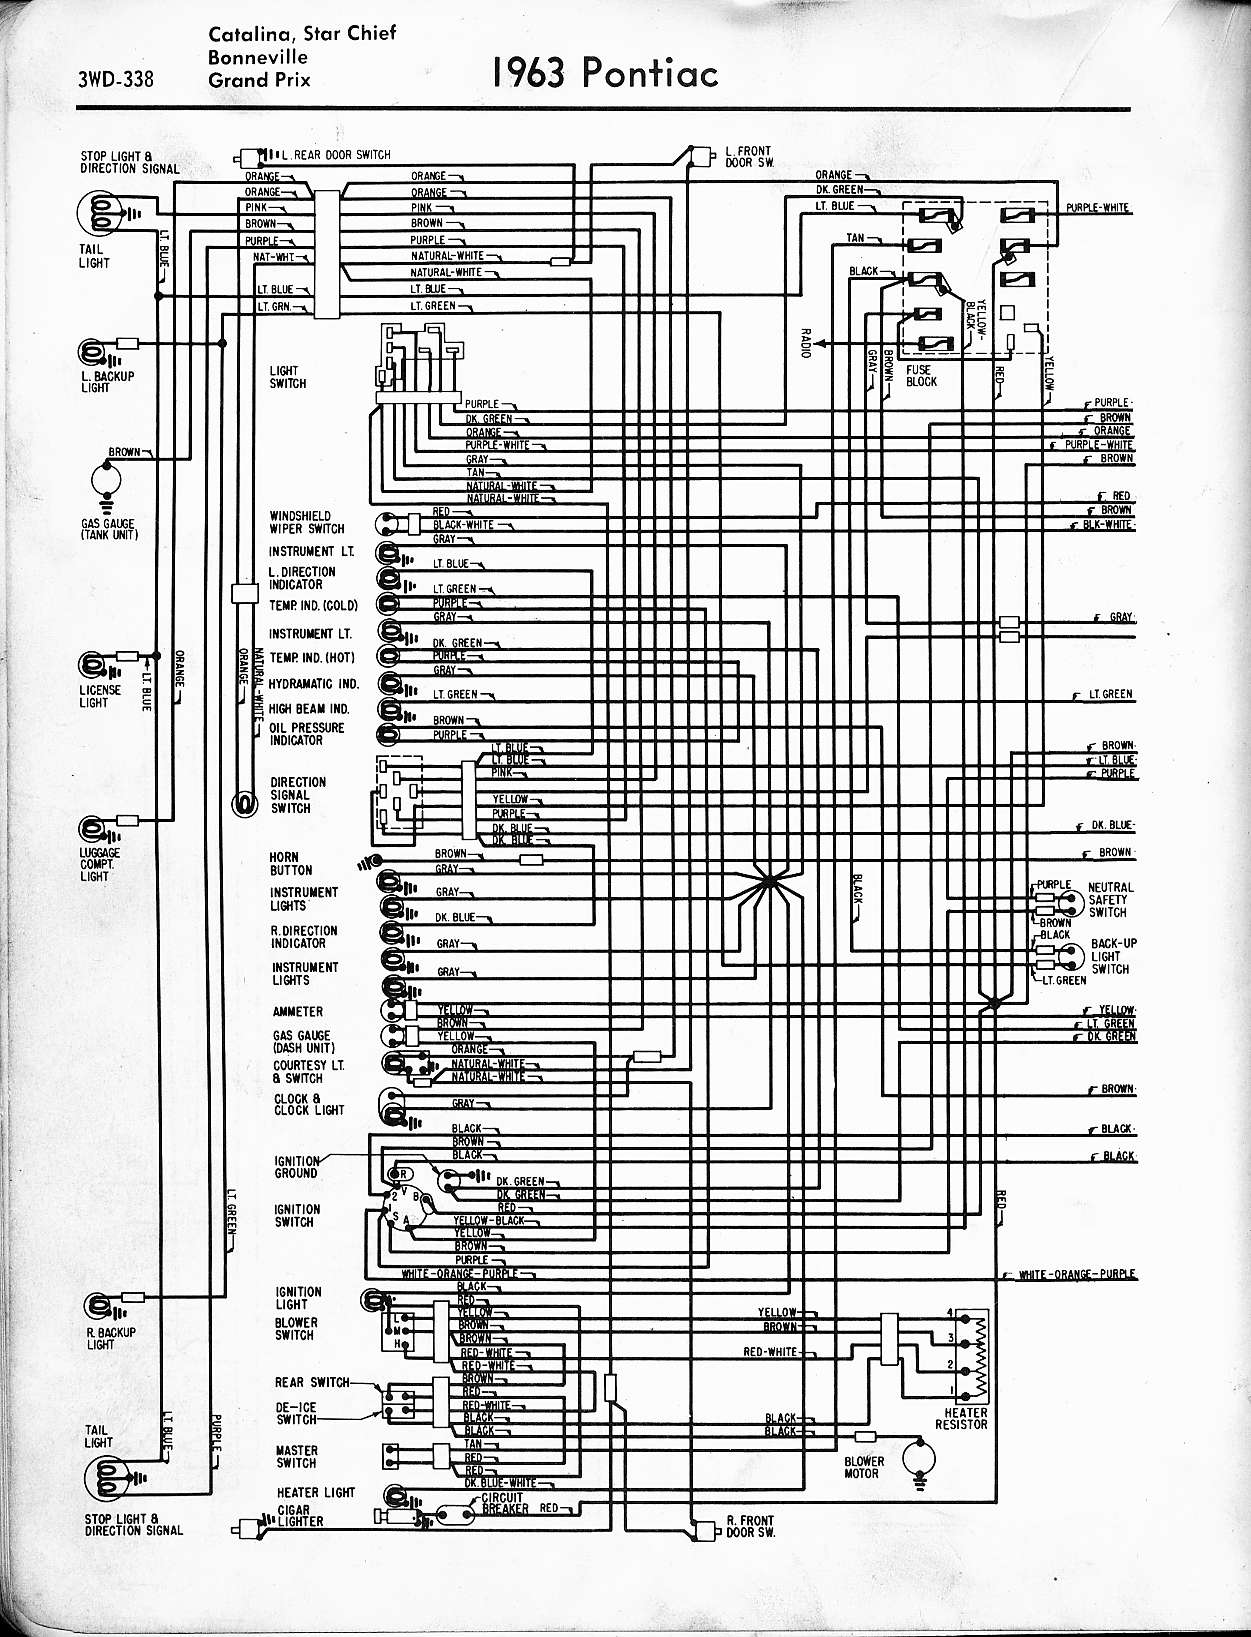 wallace racing wiring diagrams rh wallaceracing com 95 Firebird Wiring Diagram 2001 Firebird Wiring Diagram